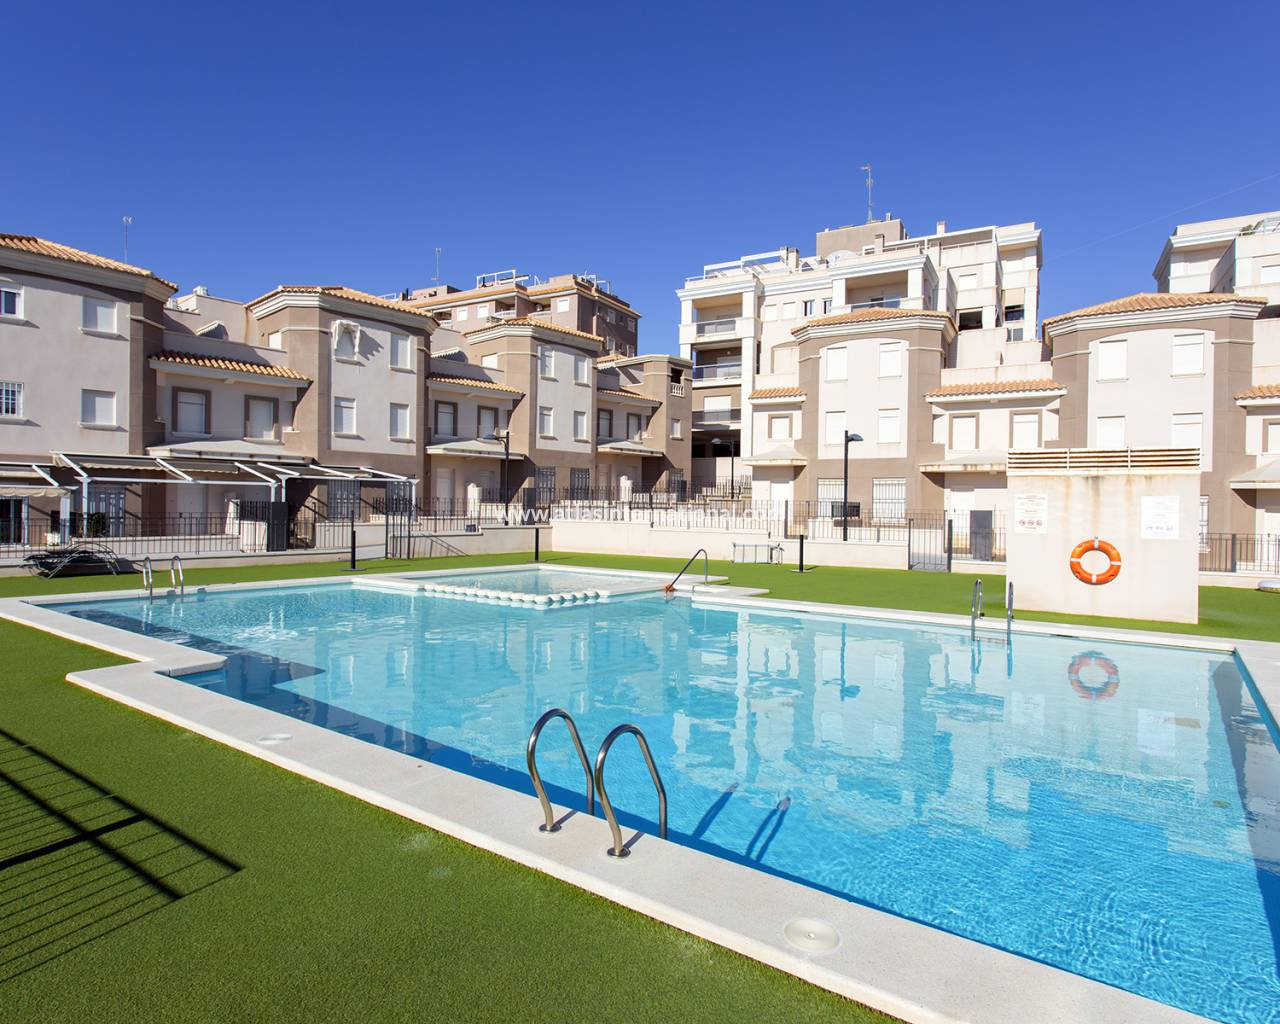 Town house - New Build - Santa pola - Santa pola